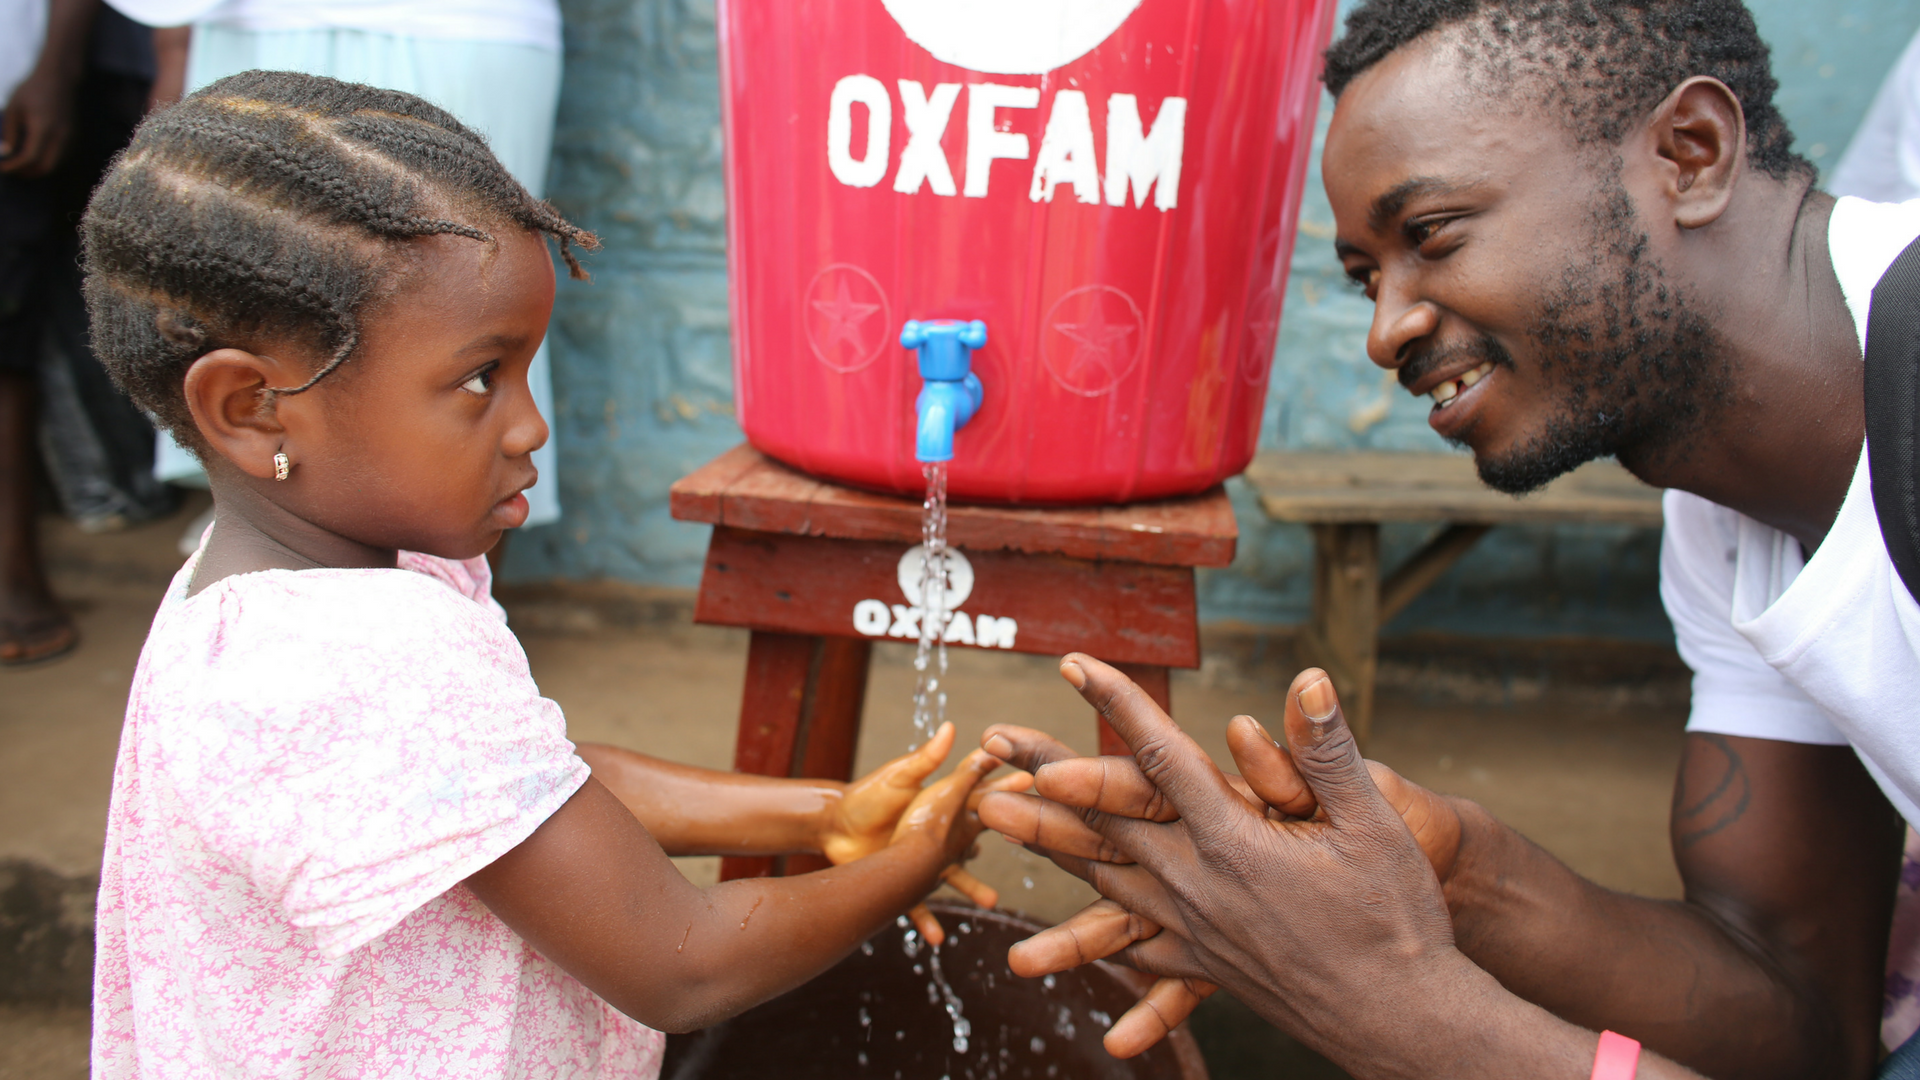 Il Gufo Teams Up With Oxfam For A Special Collaboration